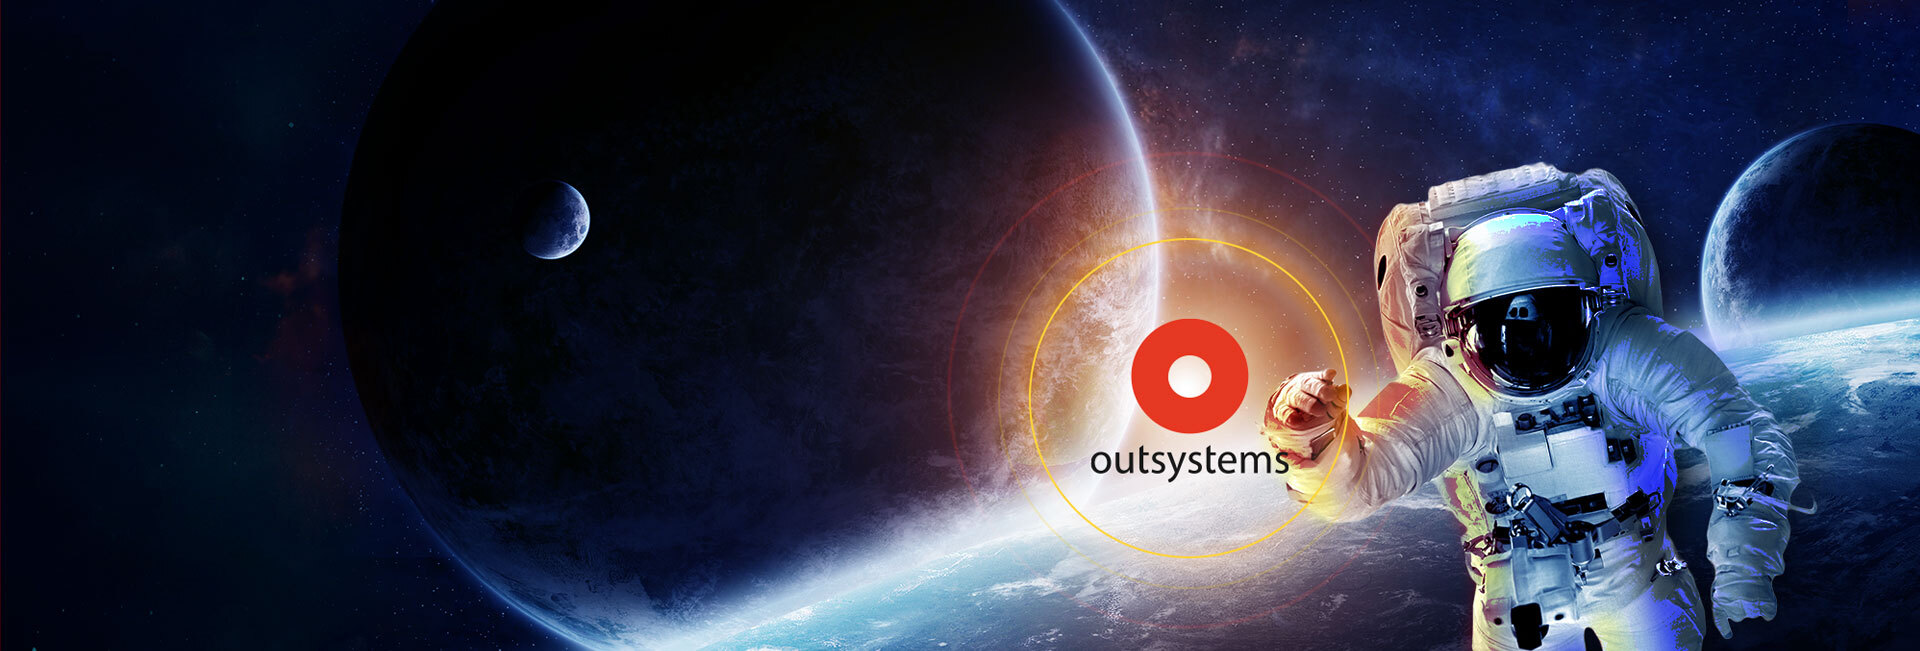 outsystems banner